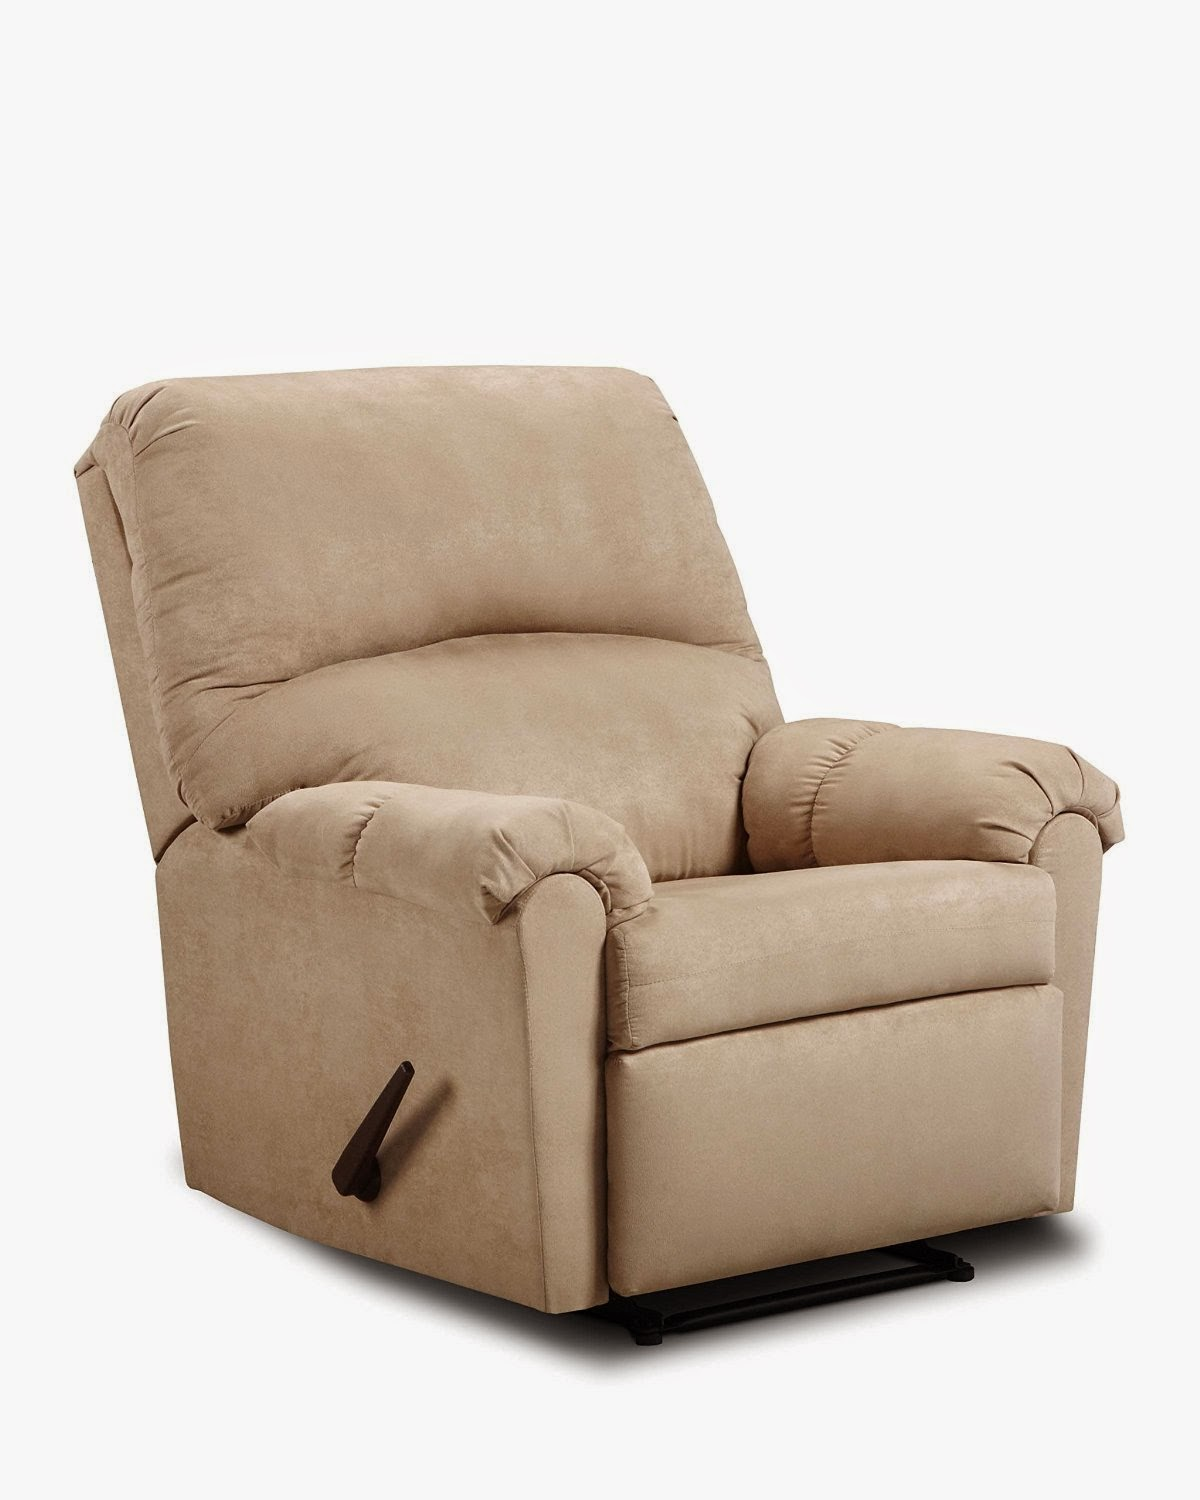 reclining sofa brands cheap leather sofas online best recliner brand recommendation wanted